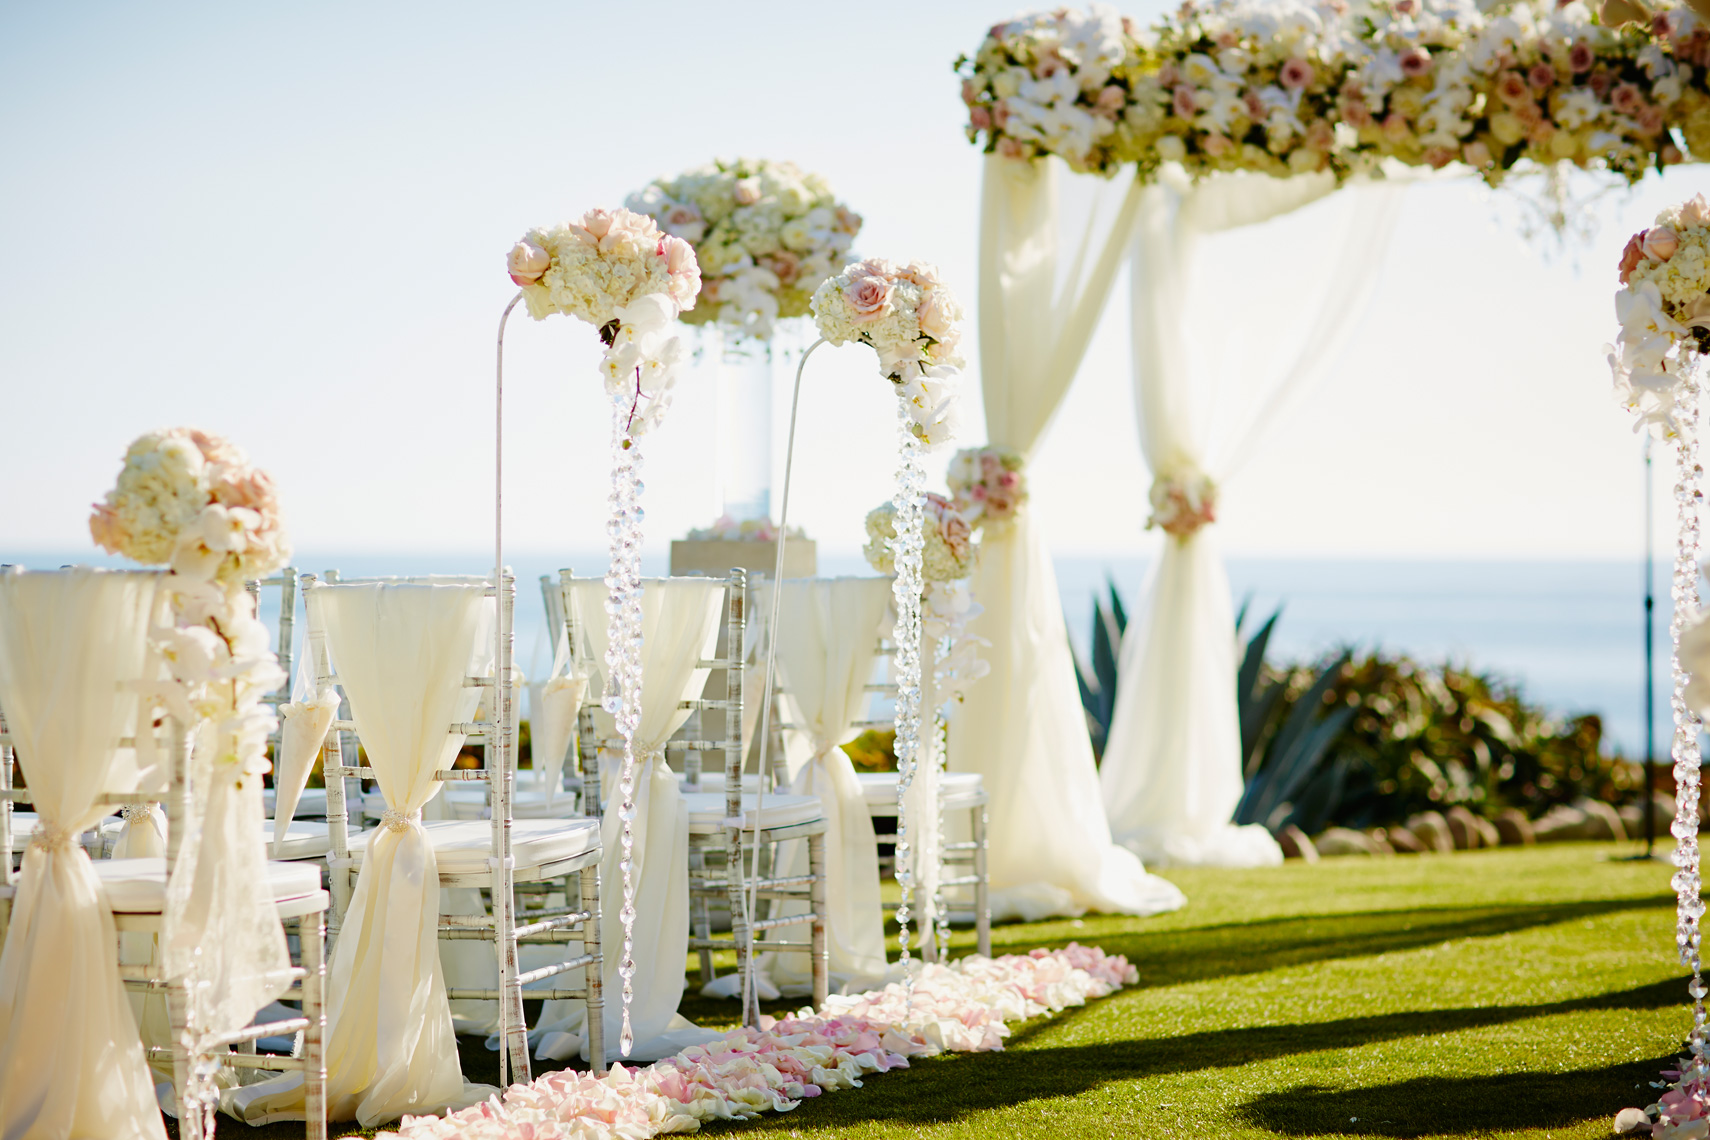 Wedding ceremony location at Montage, Laguna Beach